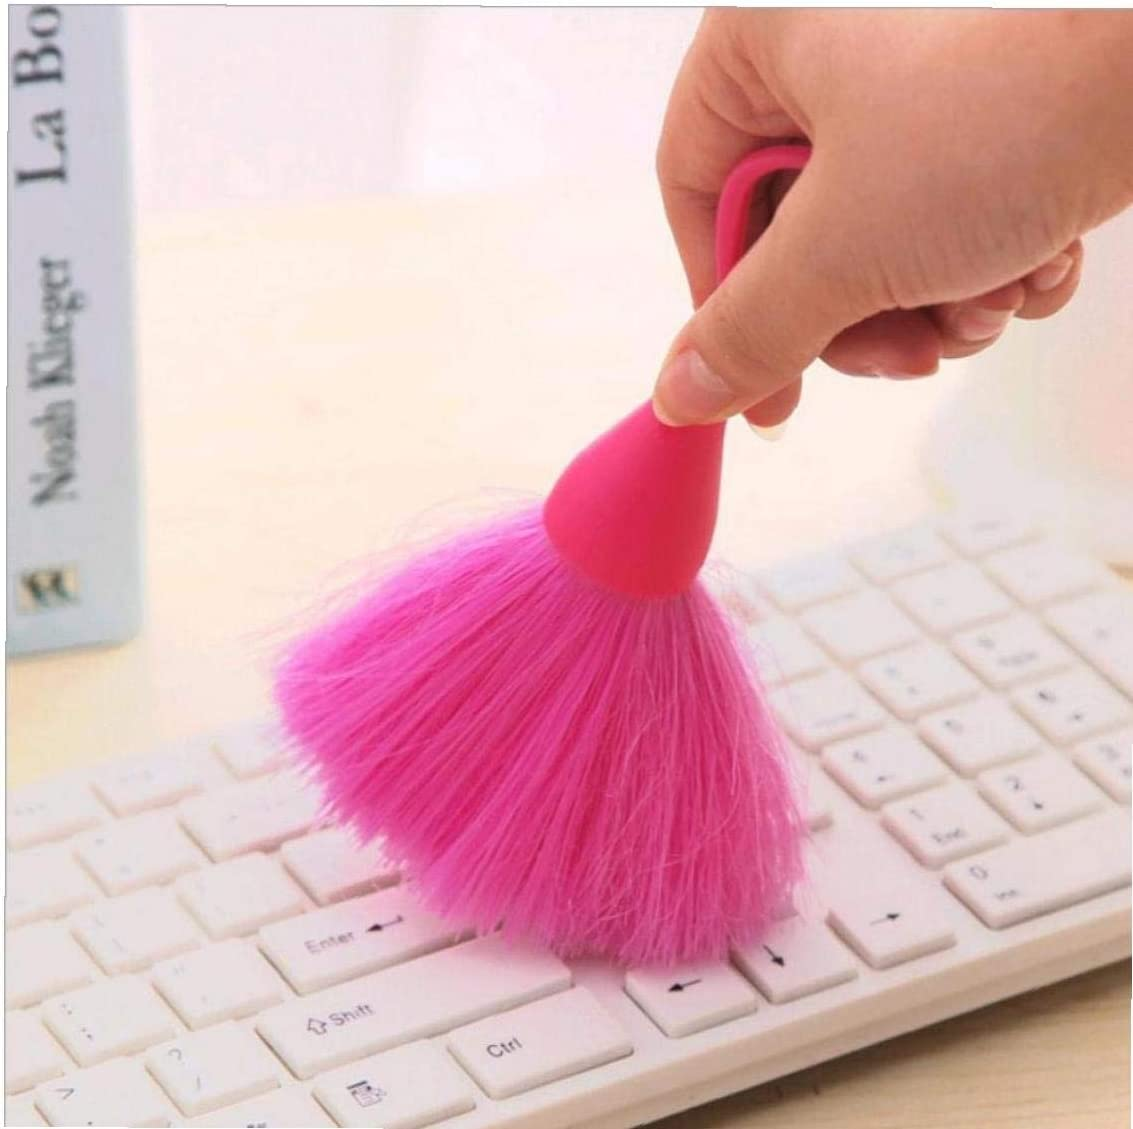 Random Color Keyboard Mini Brush Anti-Static Screen Cleaning Broom Whisk with Hanging Ring